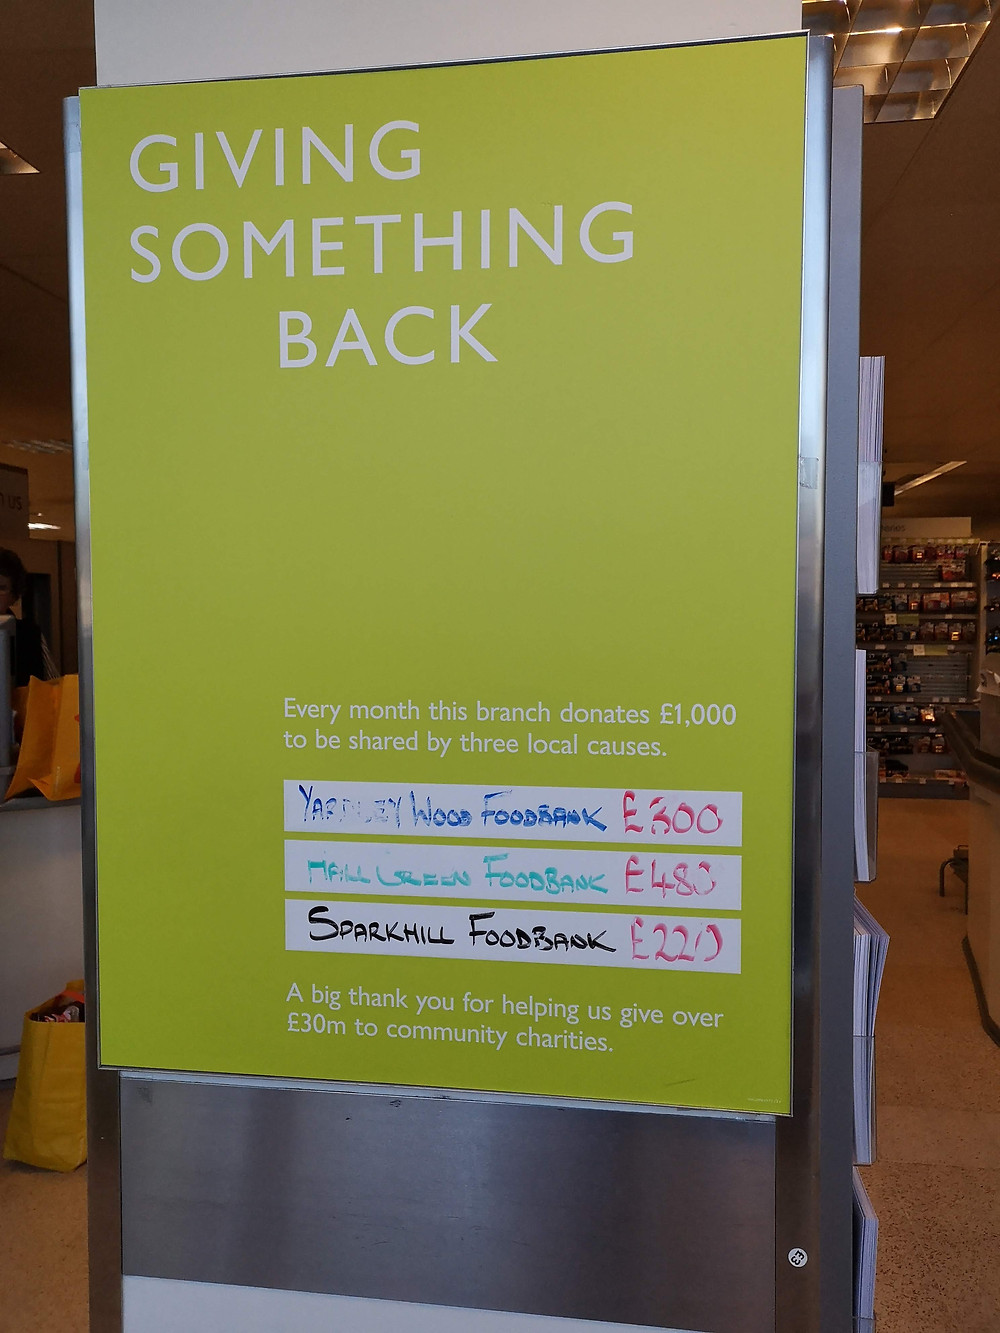 The board at Waitrose Hall Green showing £480 is being donated to the foodbank at the Job Marston Centre